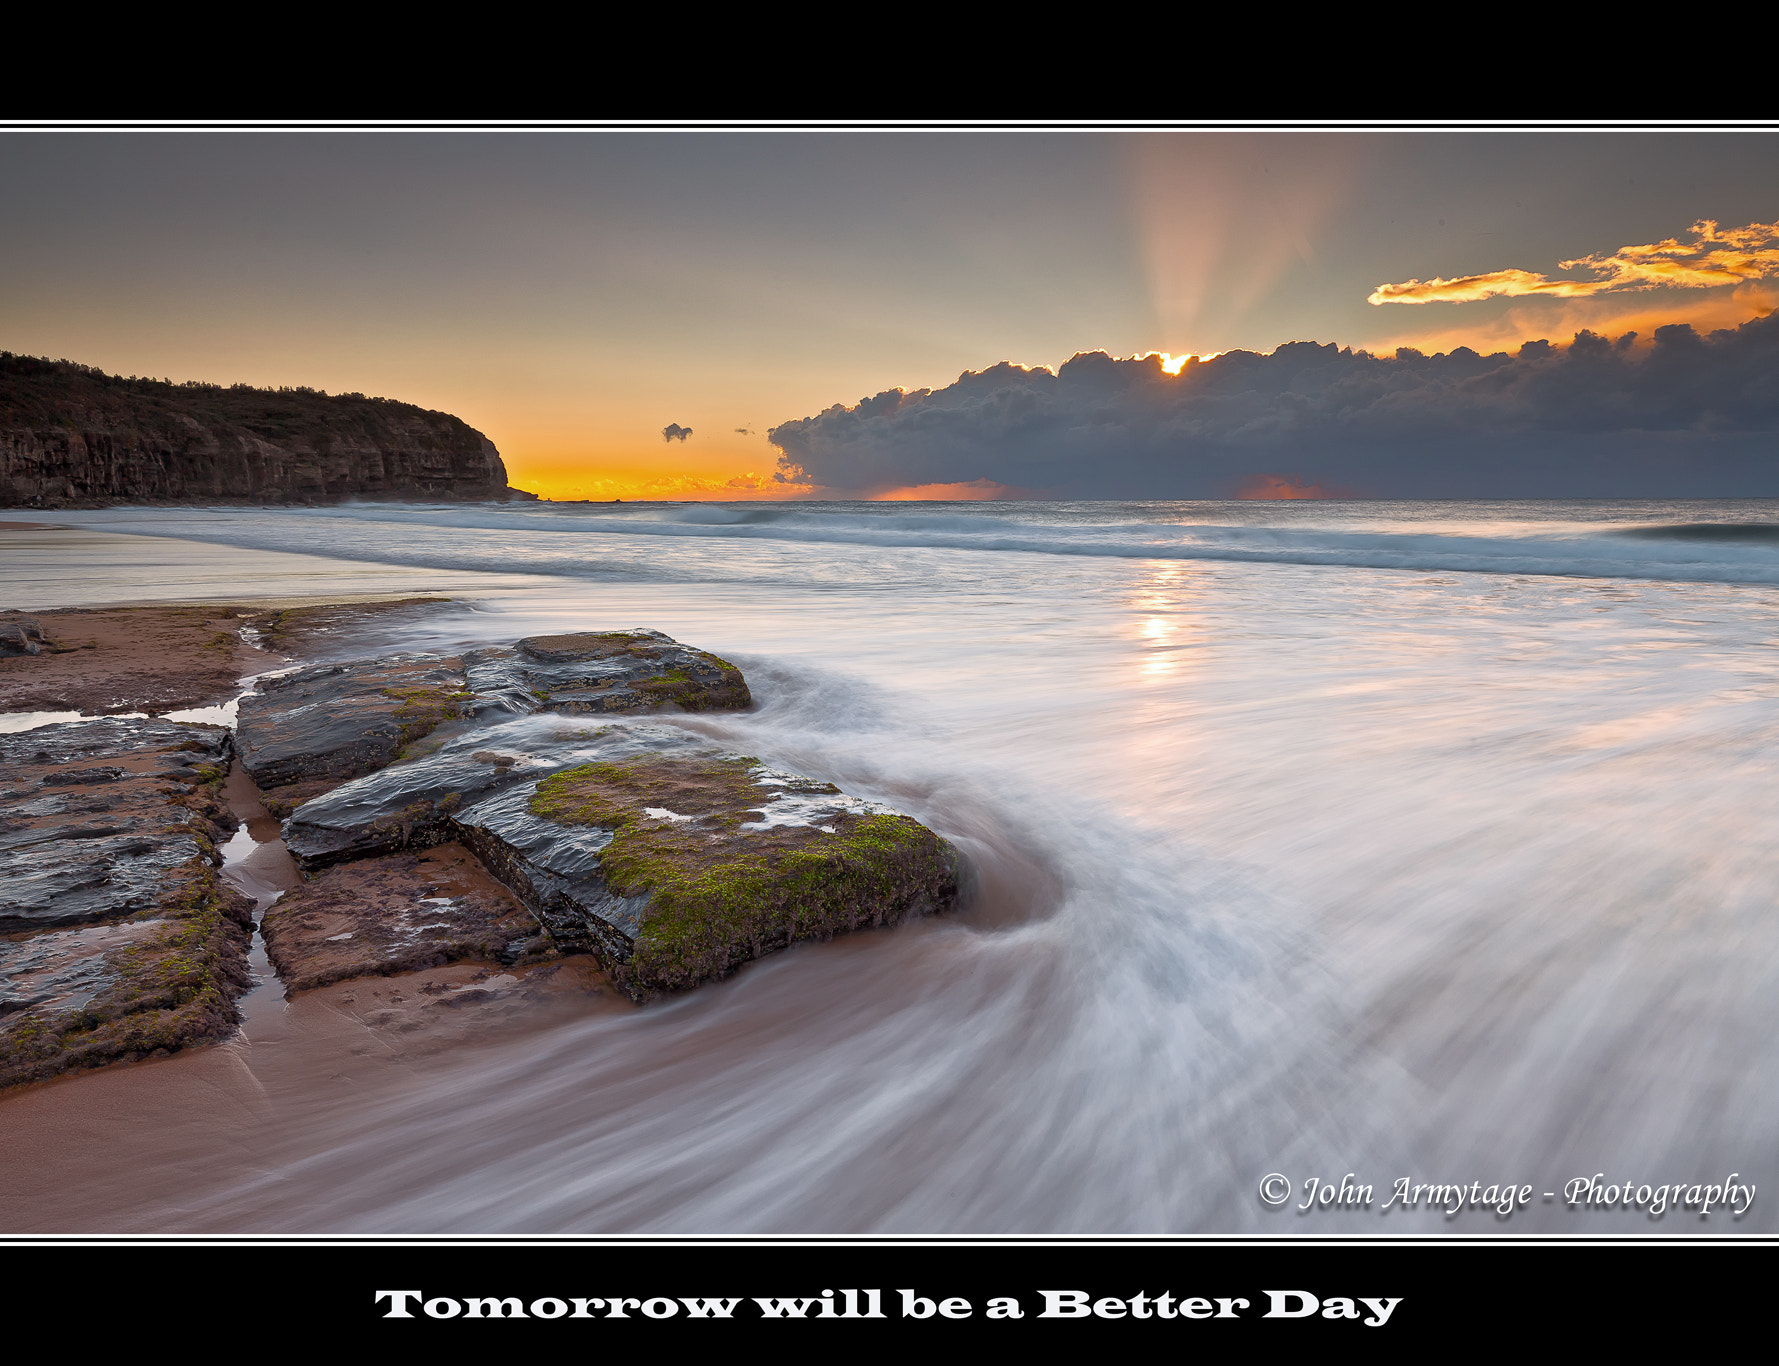 Photograph Tomorrow will be a Better Day.... by John Armytage on 500px